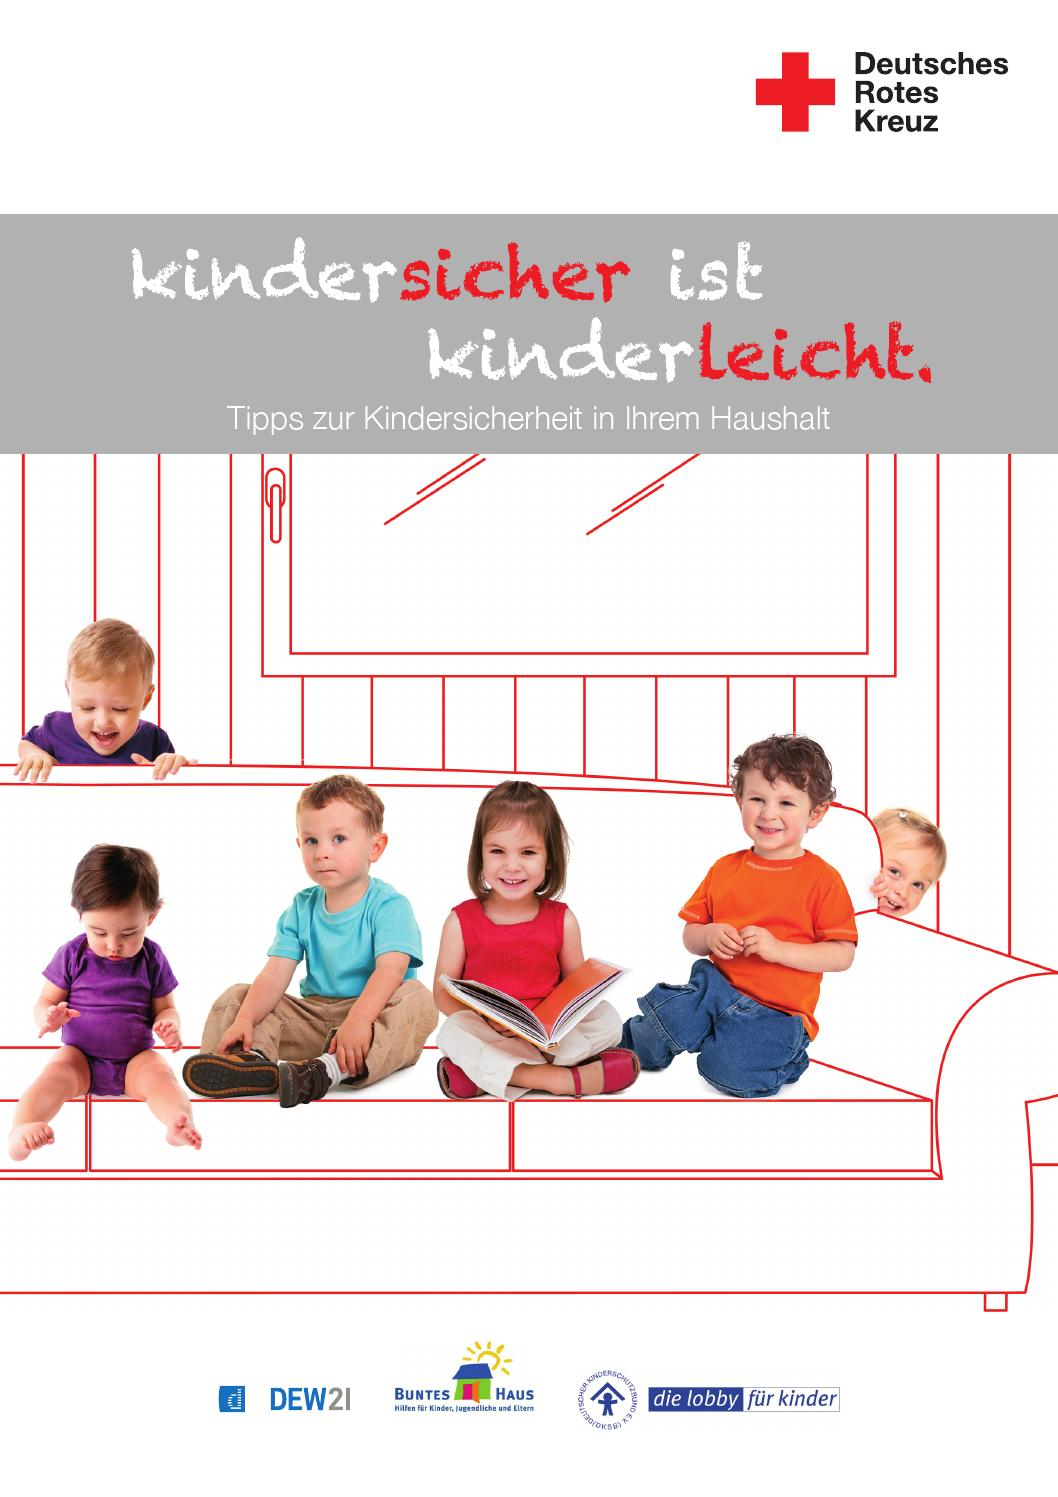 brosch re kindersicherheit by commit mbdk issuu. Black Bedroom Furniture Sets. Home Design Ideas